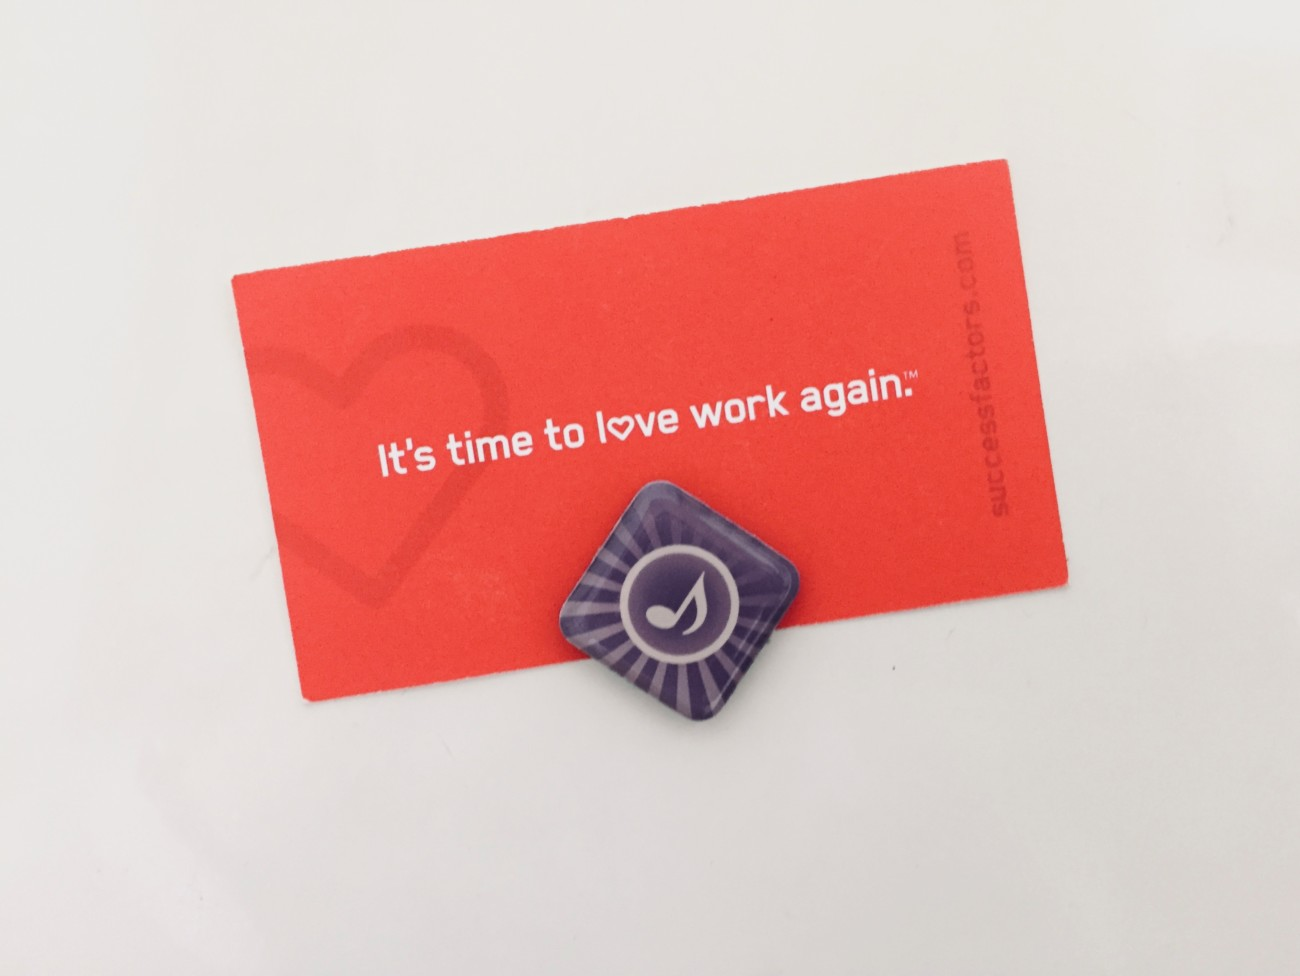 It's time to love work again